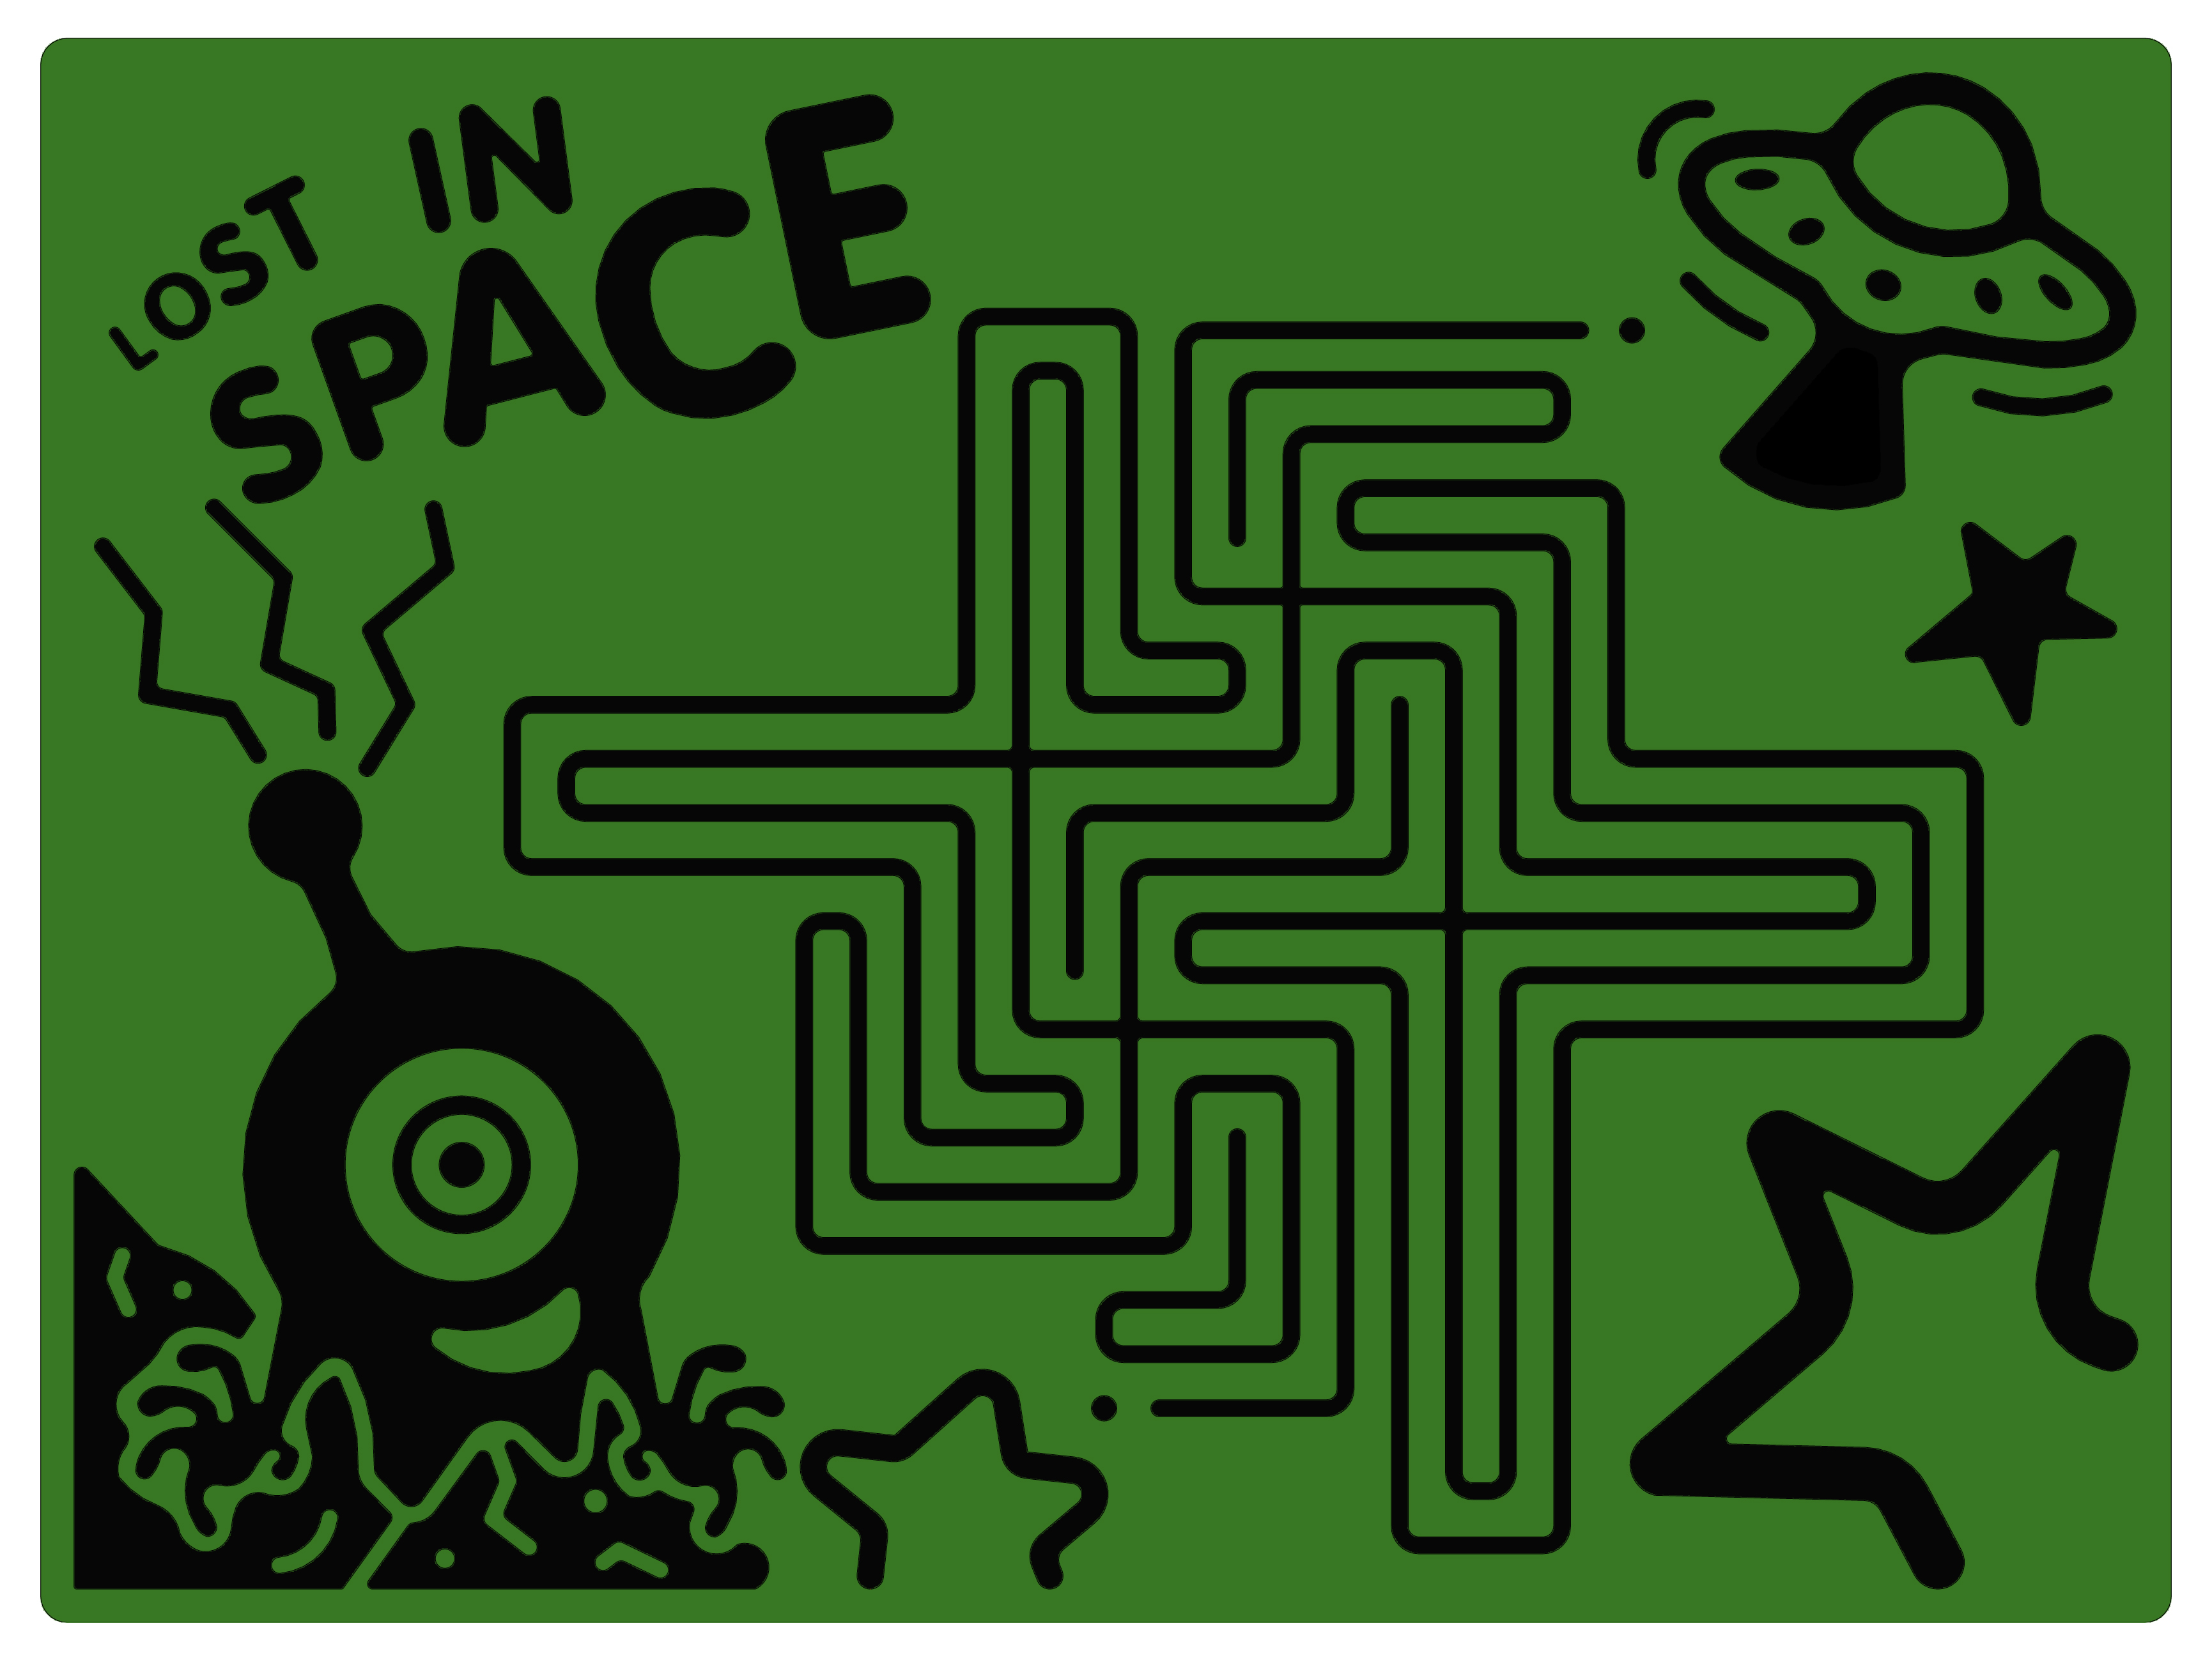 Lost In Space Maze